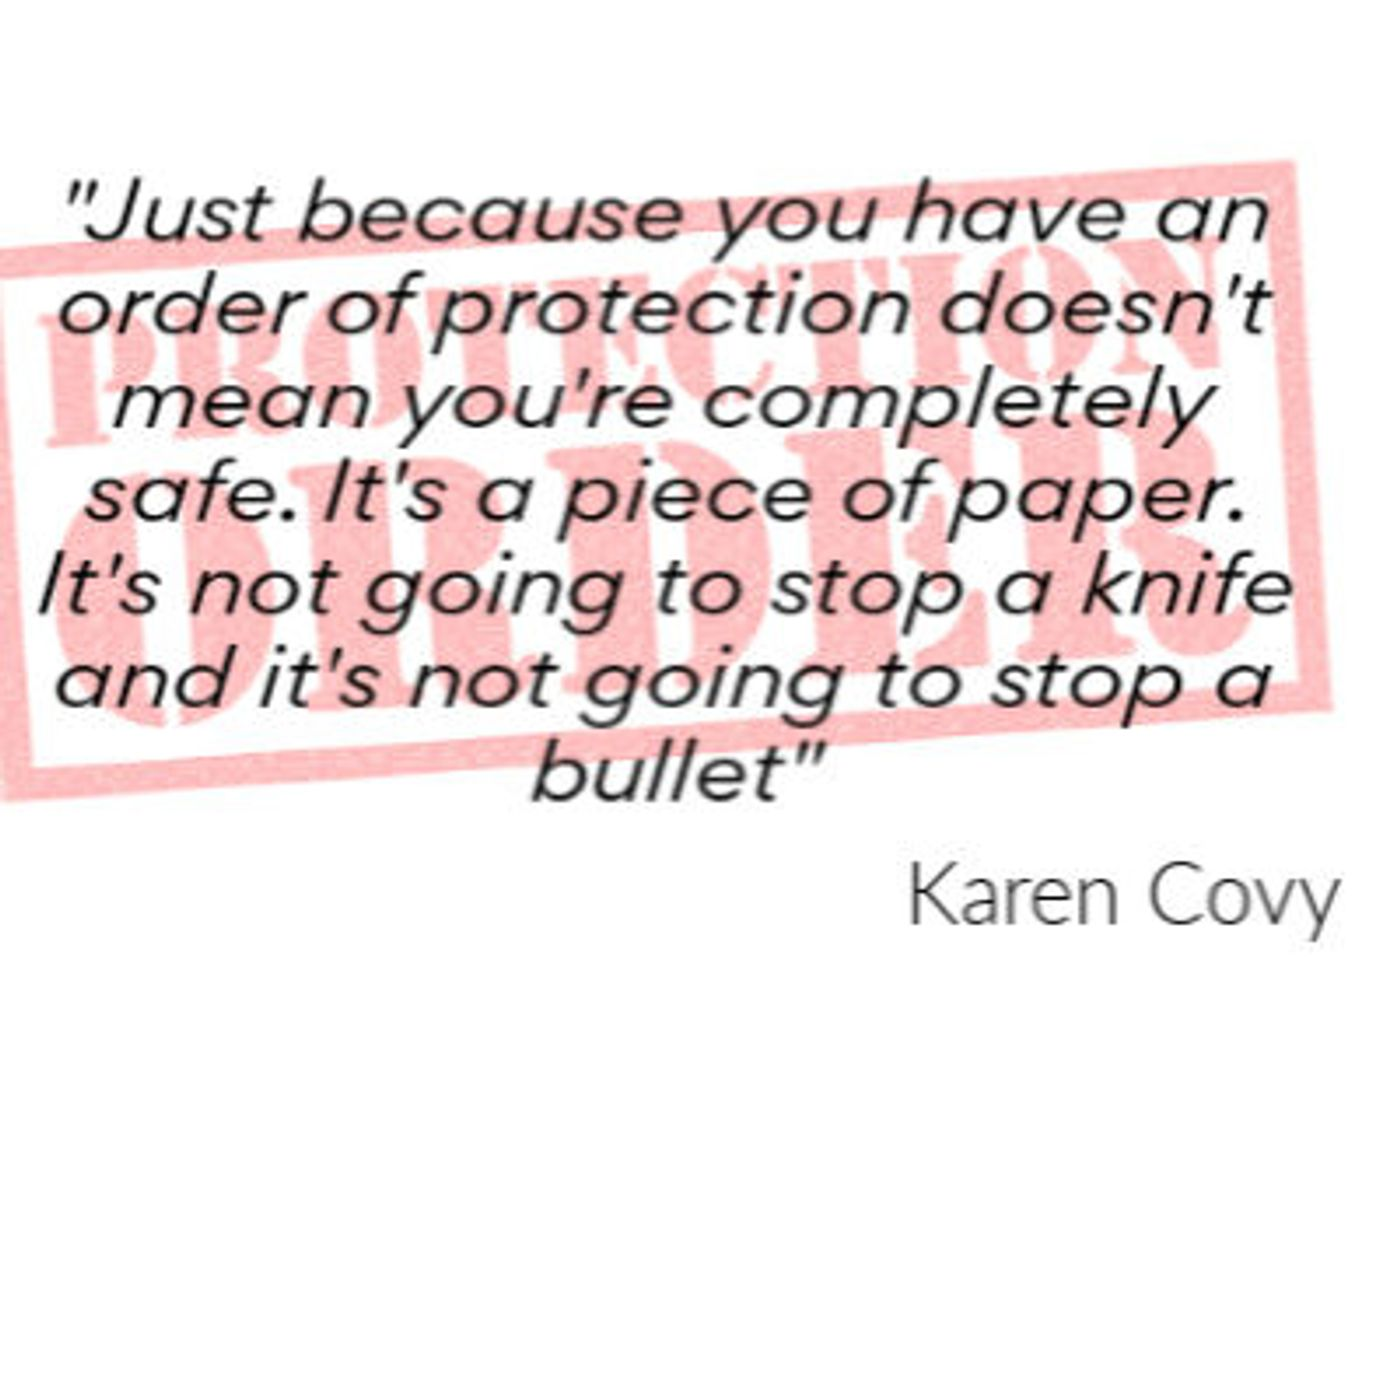 Conversations About Divorce - Protection Orders And Divorce: What Are They, How Do You Get One And Do They Keep You Safe?